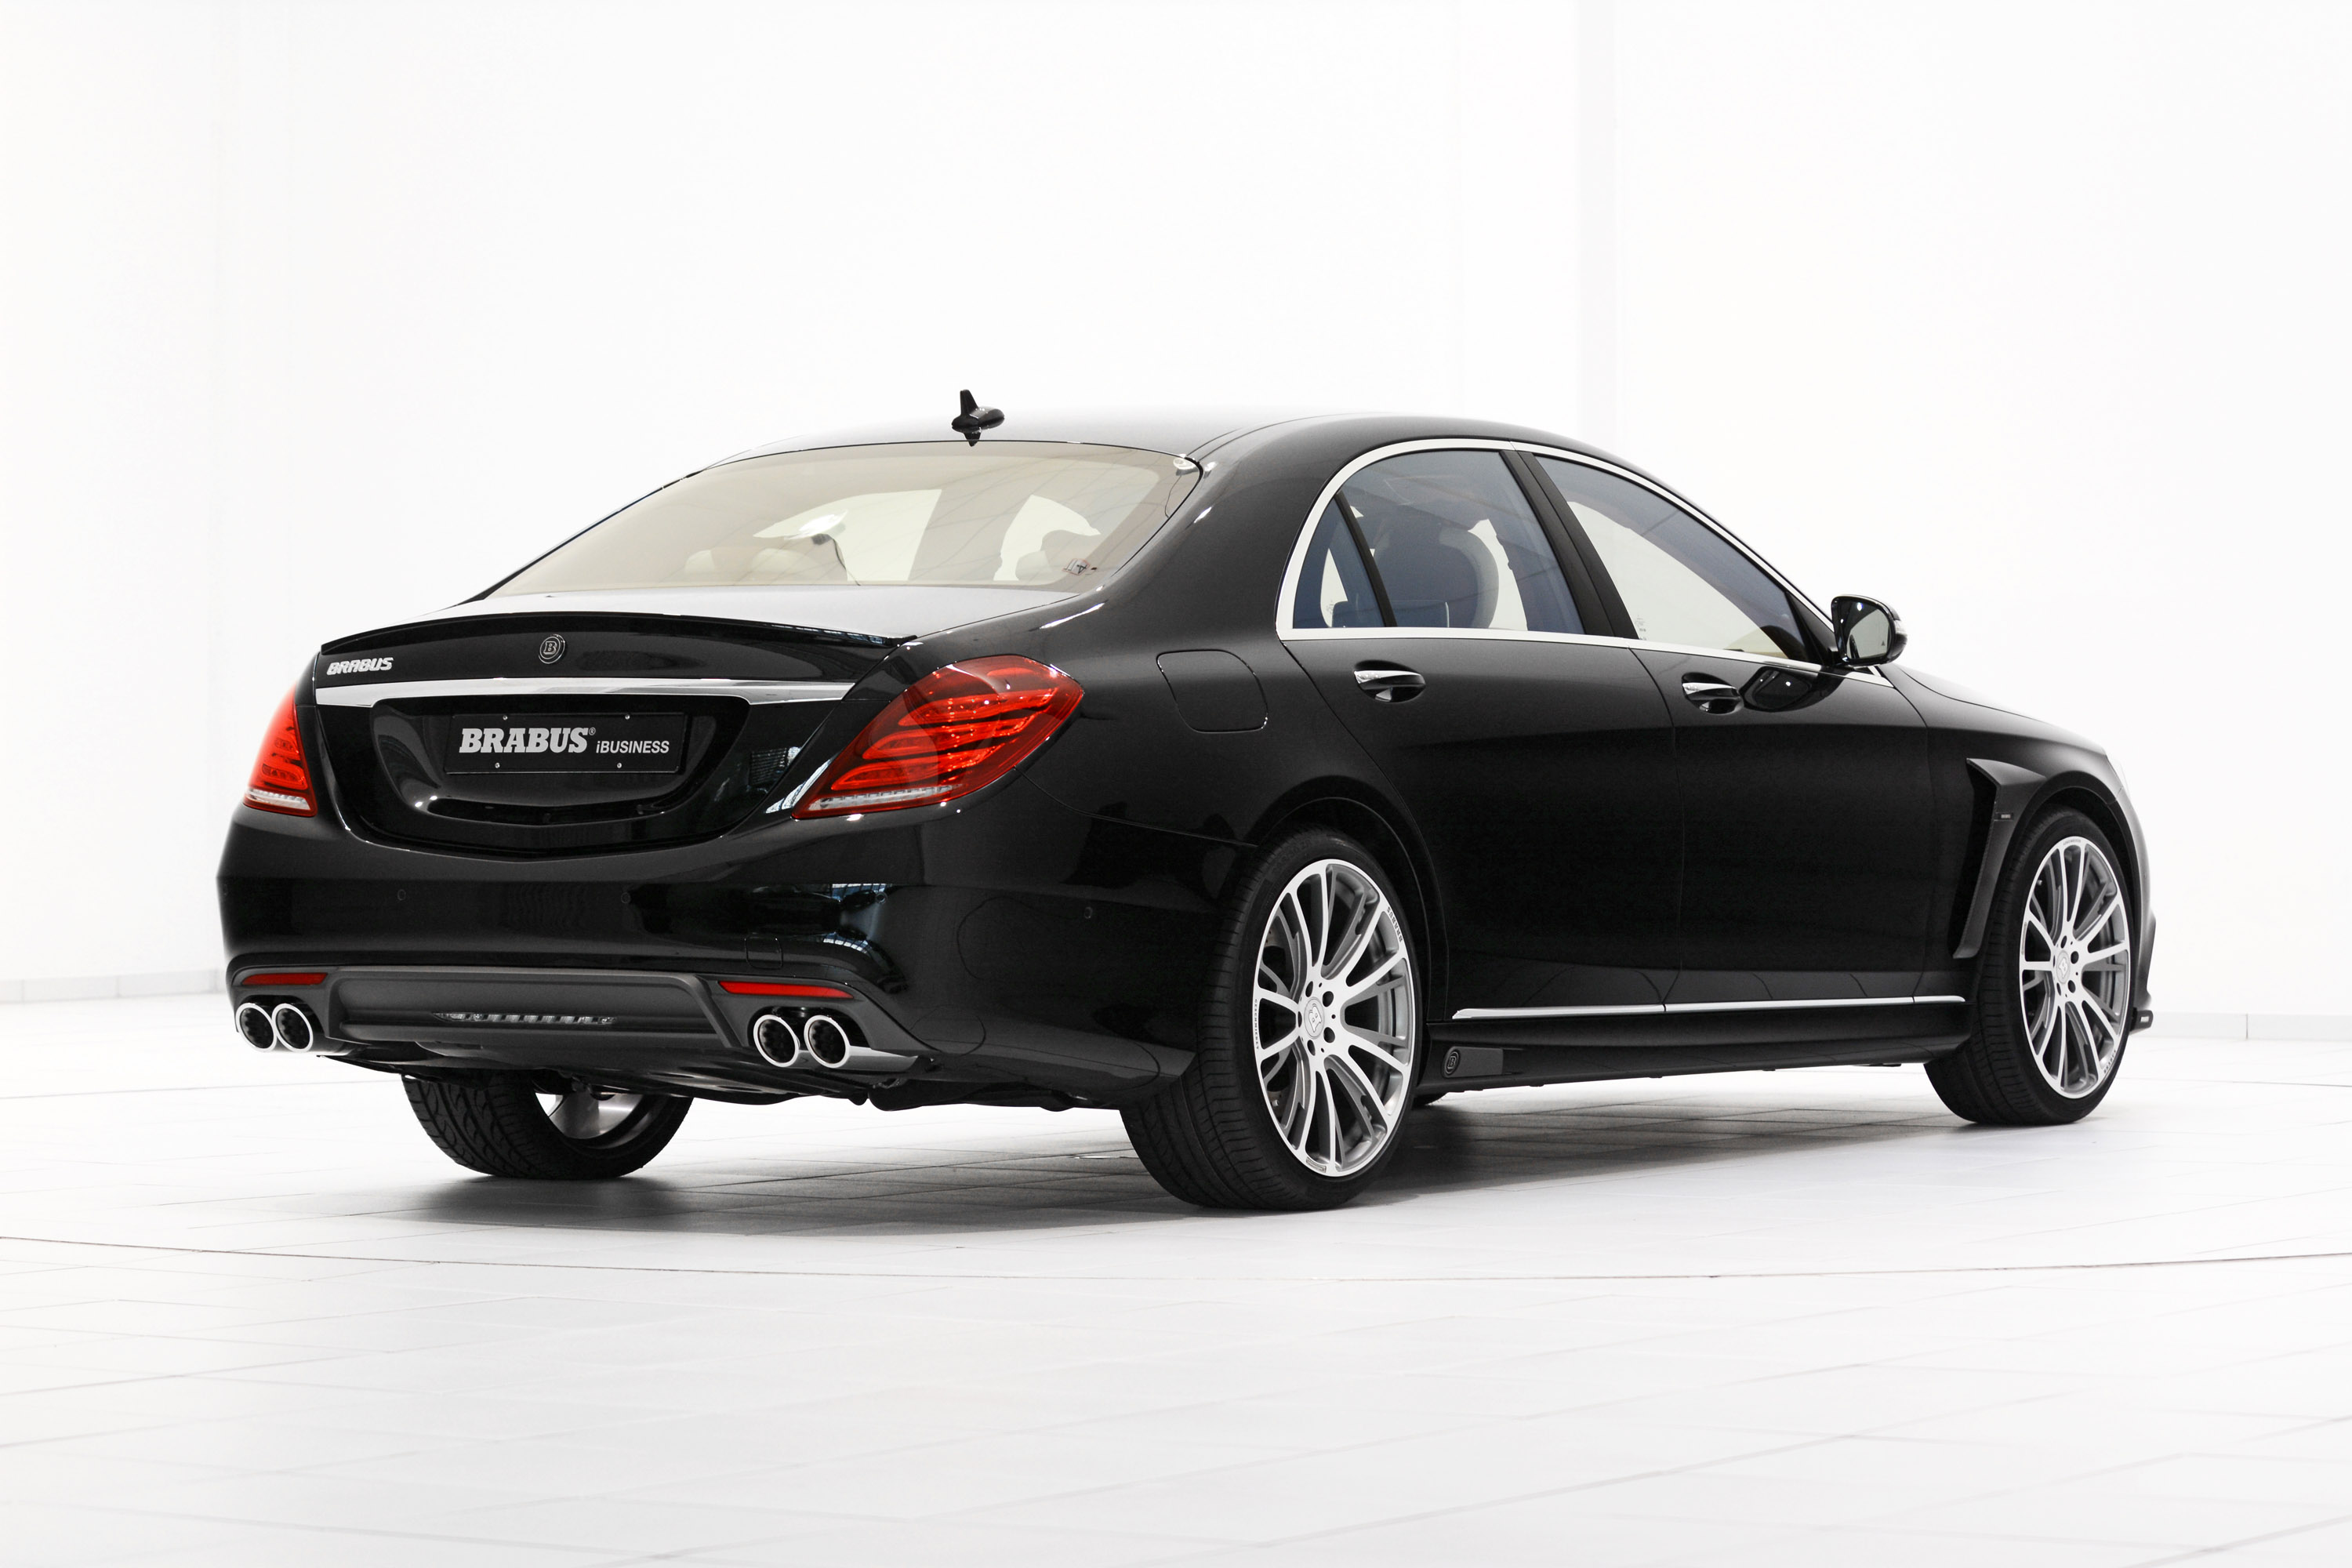 Brabus 850 6 0 bi turbo ibusiness based on mercedes benz for Mercedes benz usa llc brunswick ga